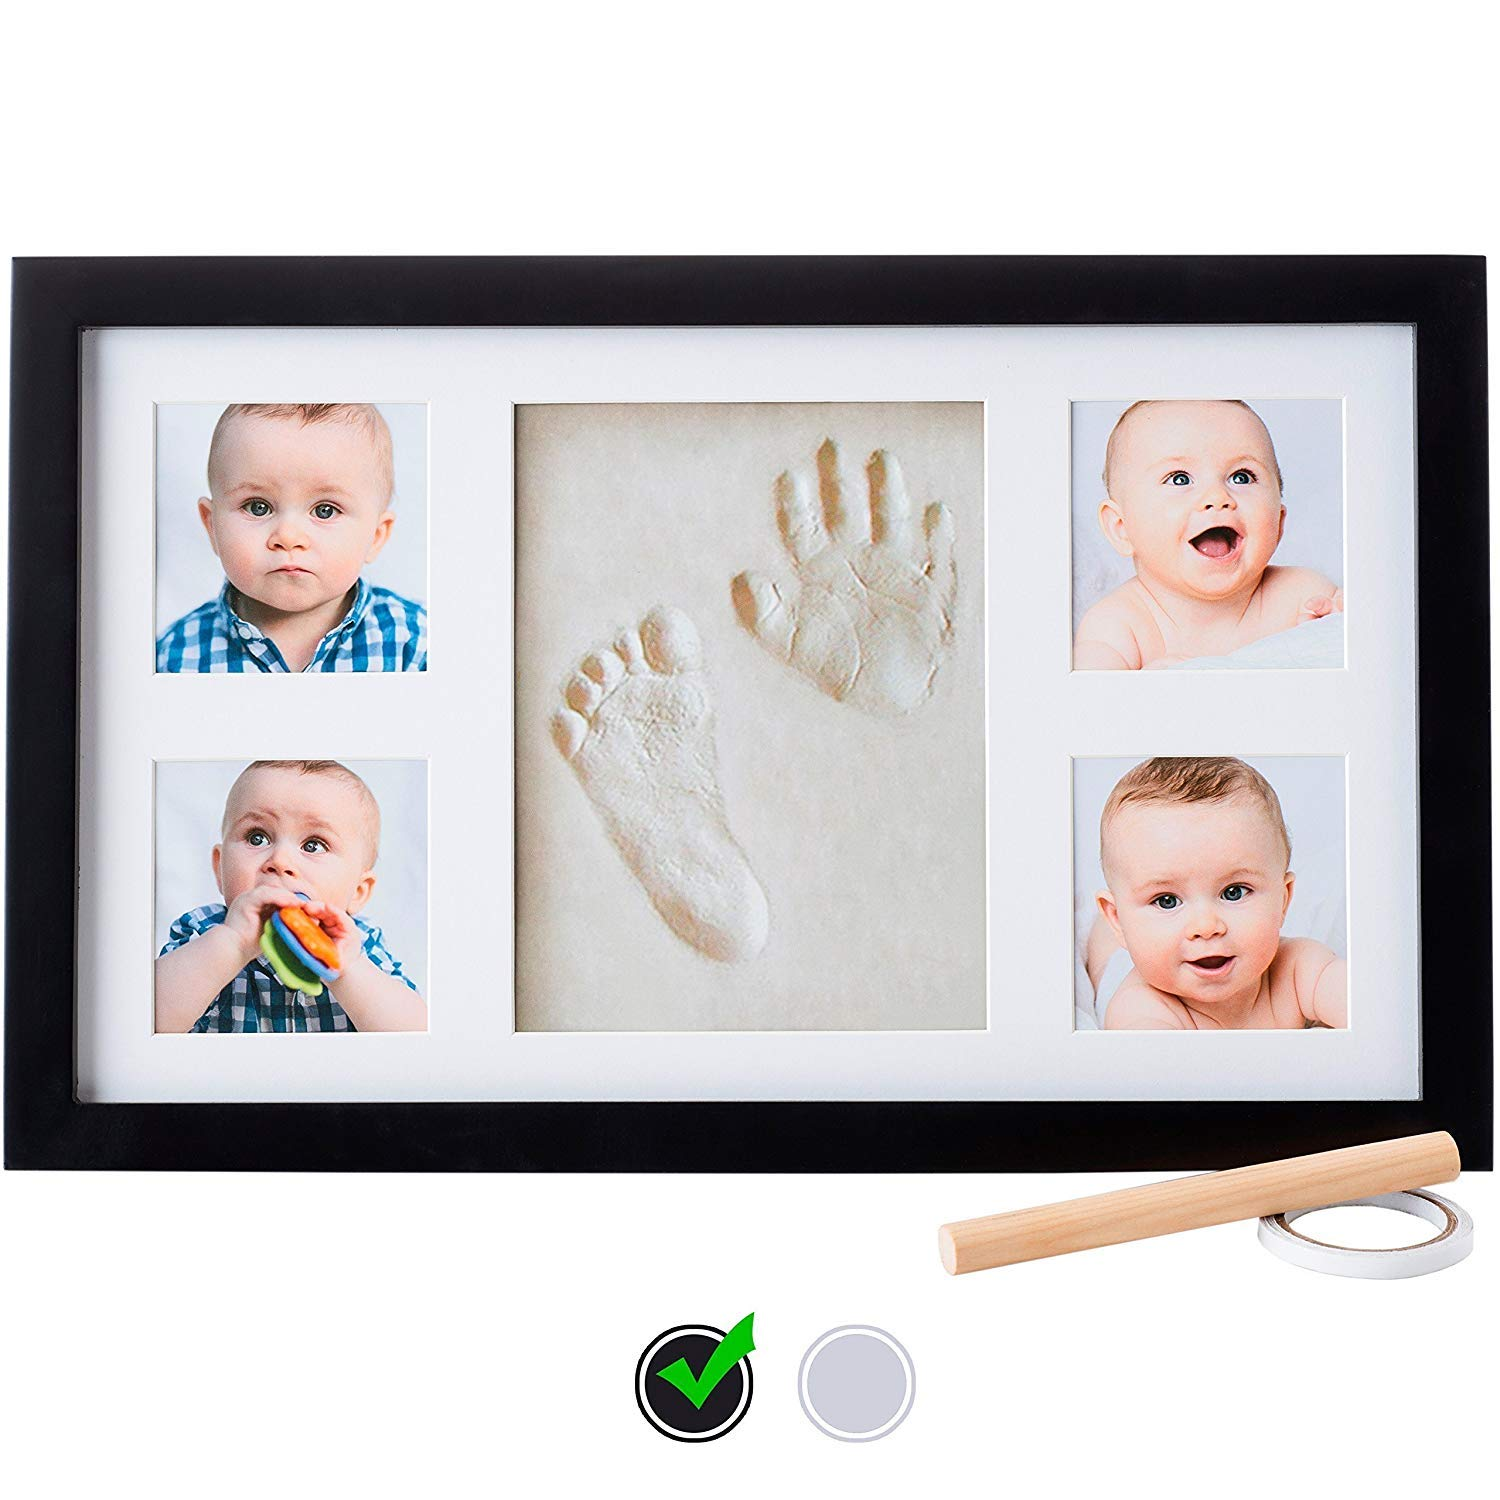 Baby Handprint Kit |NO Mold| Baby Picture Frame, Baby Footprint kit, Perfect for Baby Junge Gifts,obere Baby Girl Gifts, Baby Shower Gifts, Newborn Baby Keepsake Frames (Deluxe, Black)